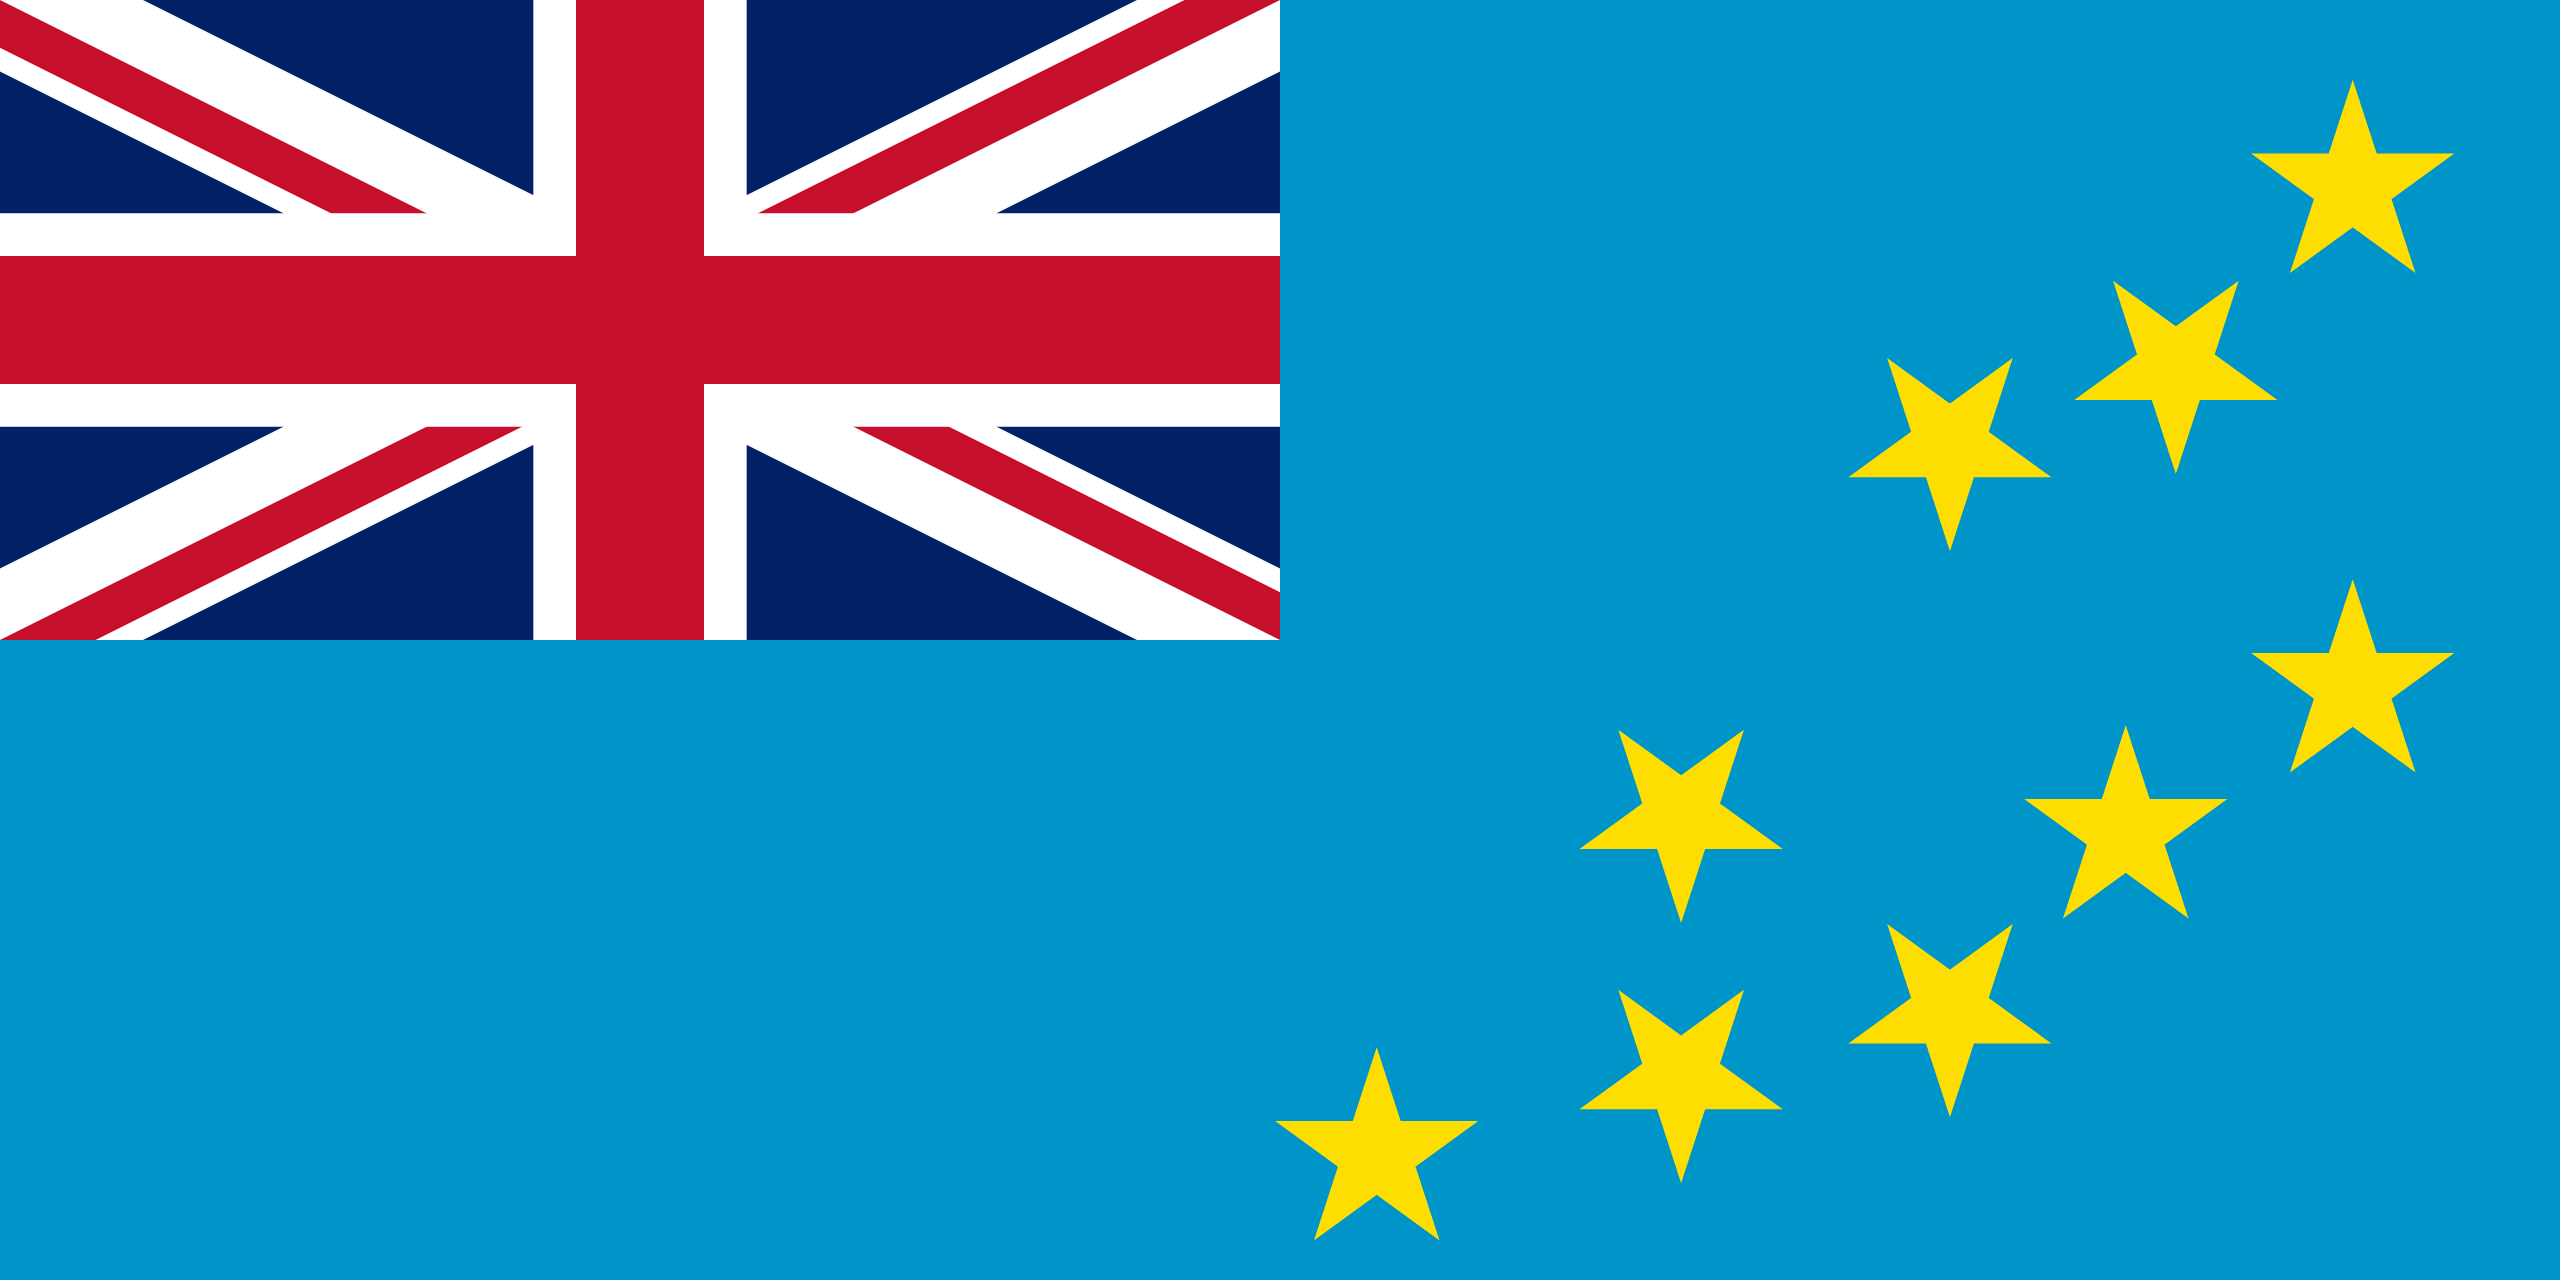 tuvalu flags of countries